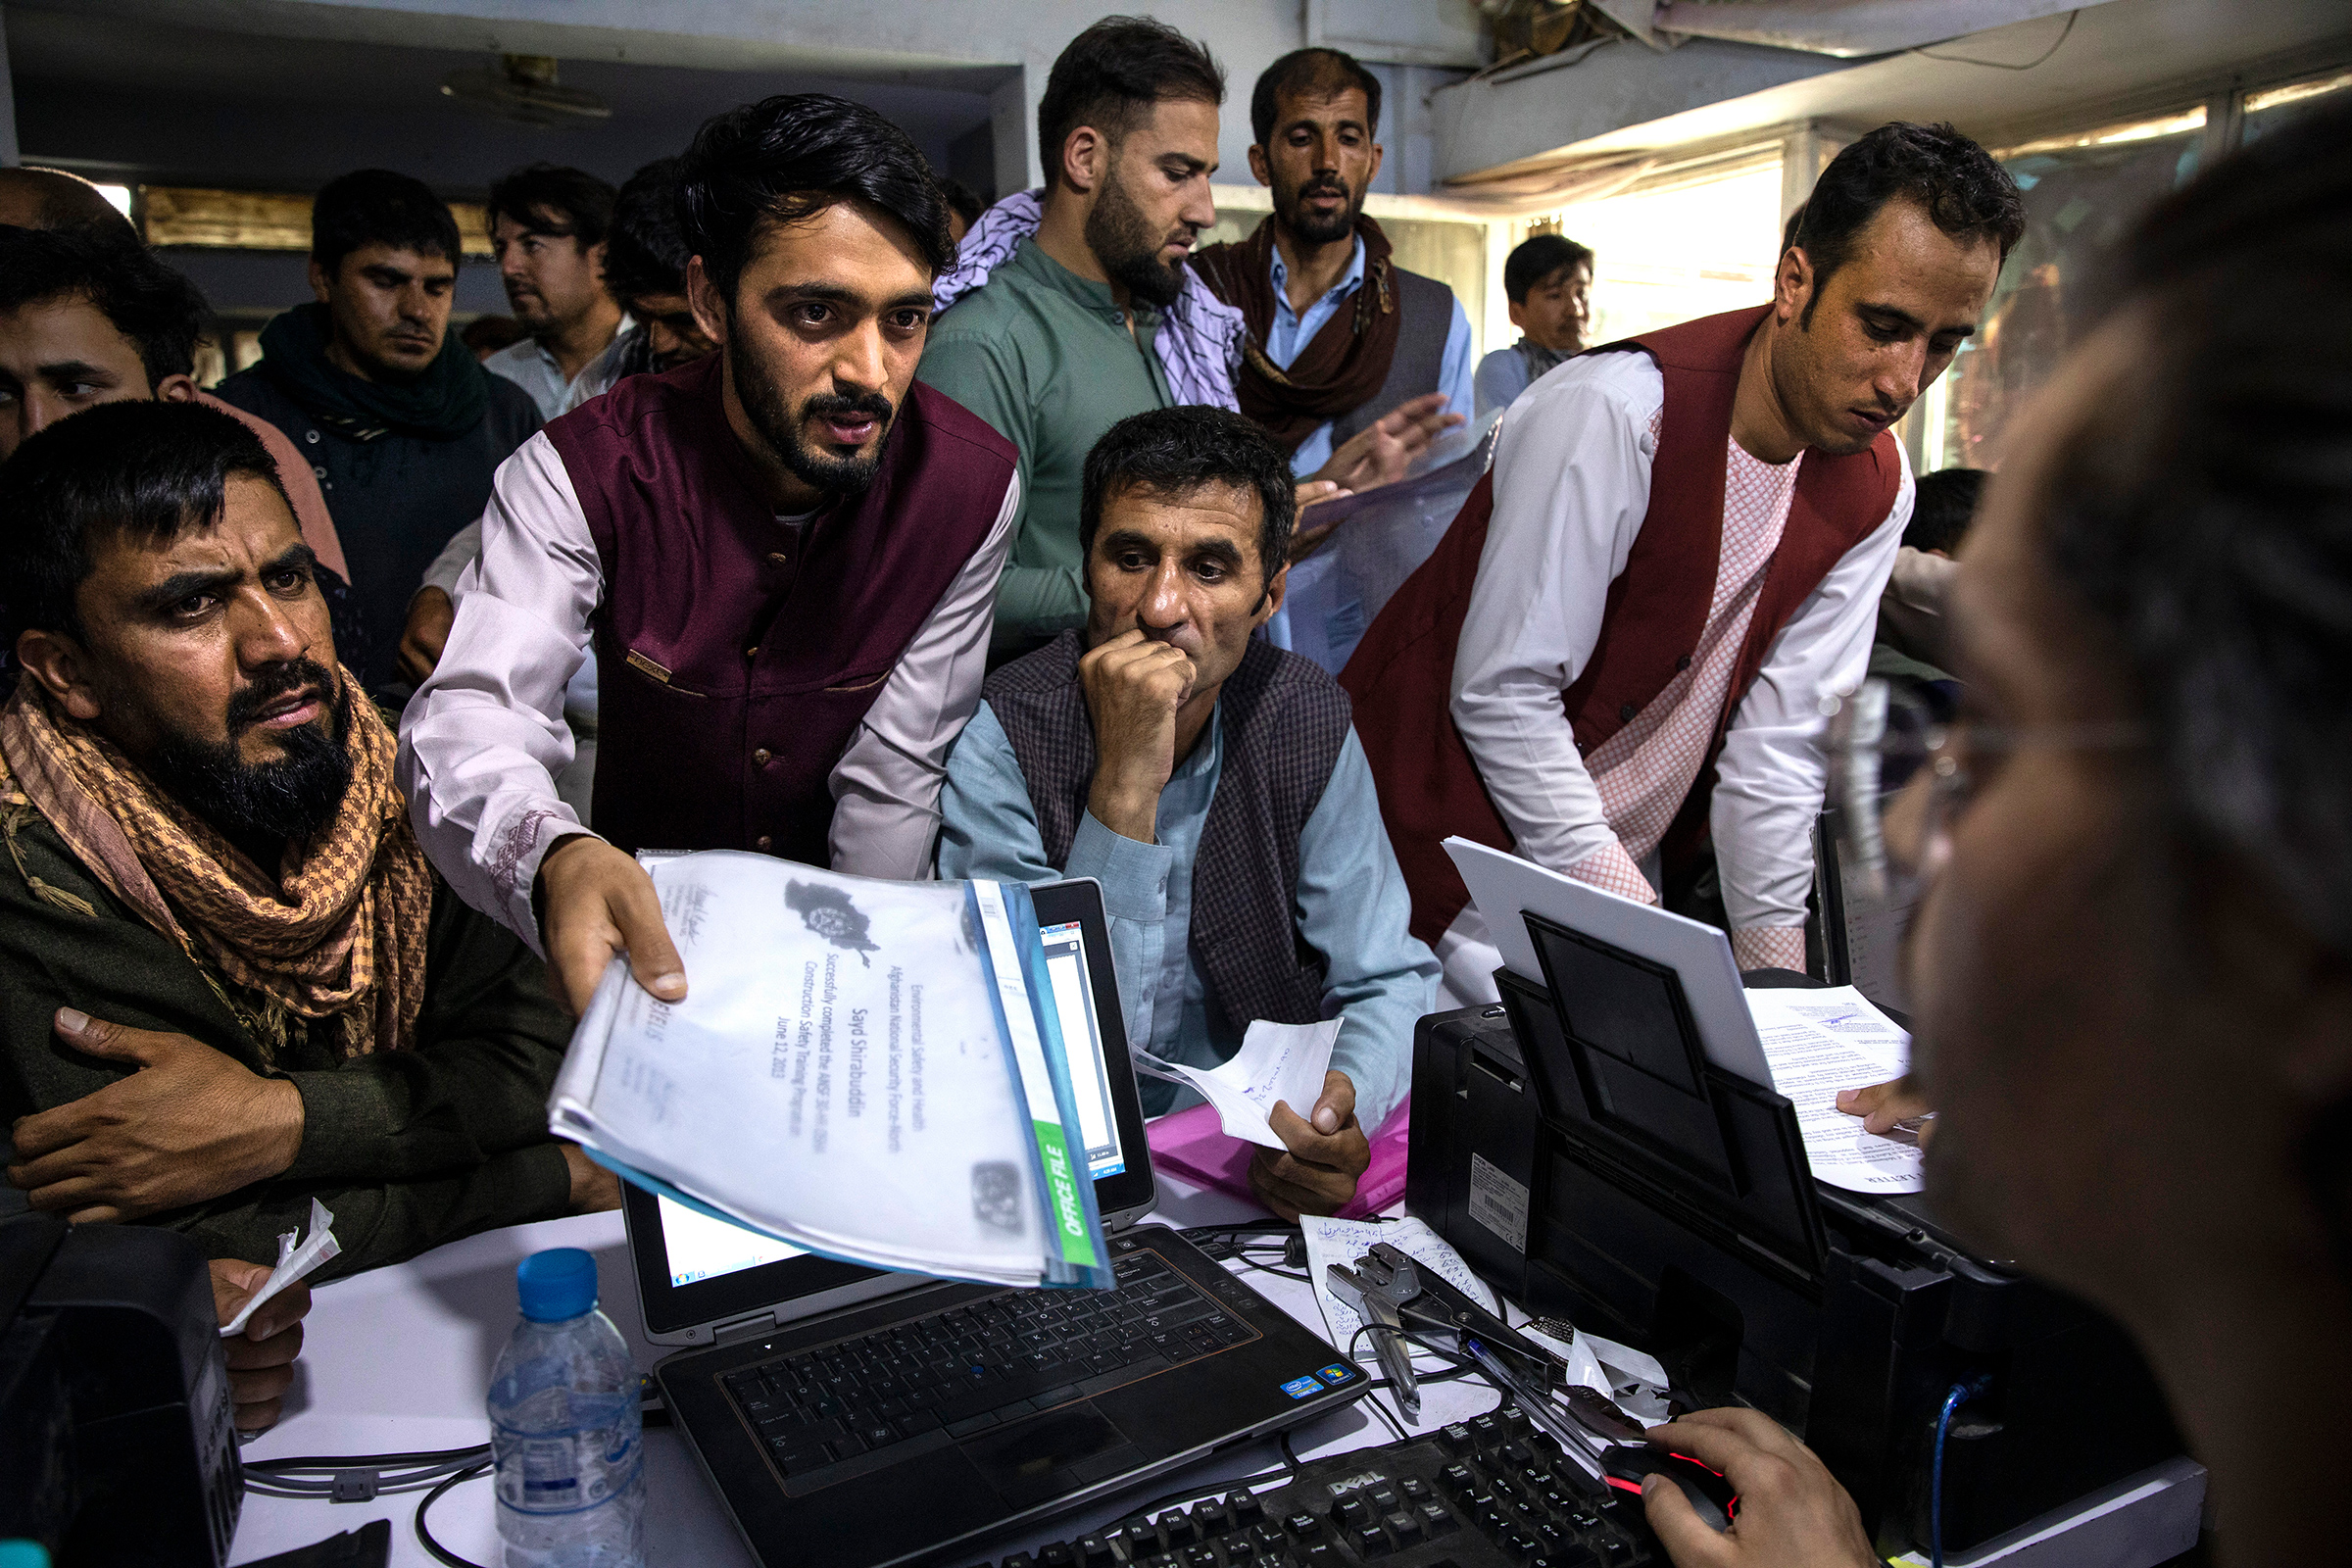 Men crowd into an Internet café while seeking help with applications for the Special Immigrant Visa program in Kabul on Aug. 8.